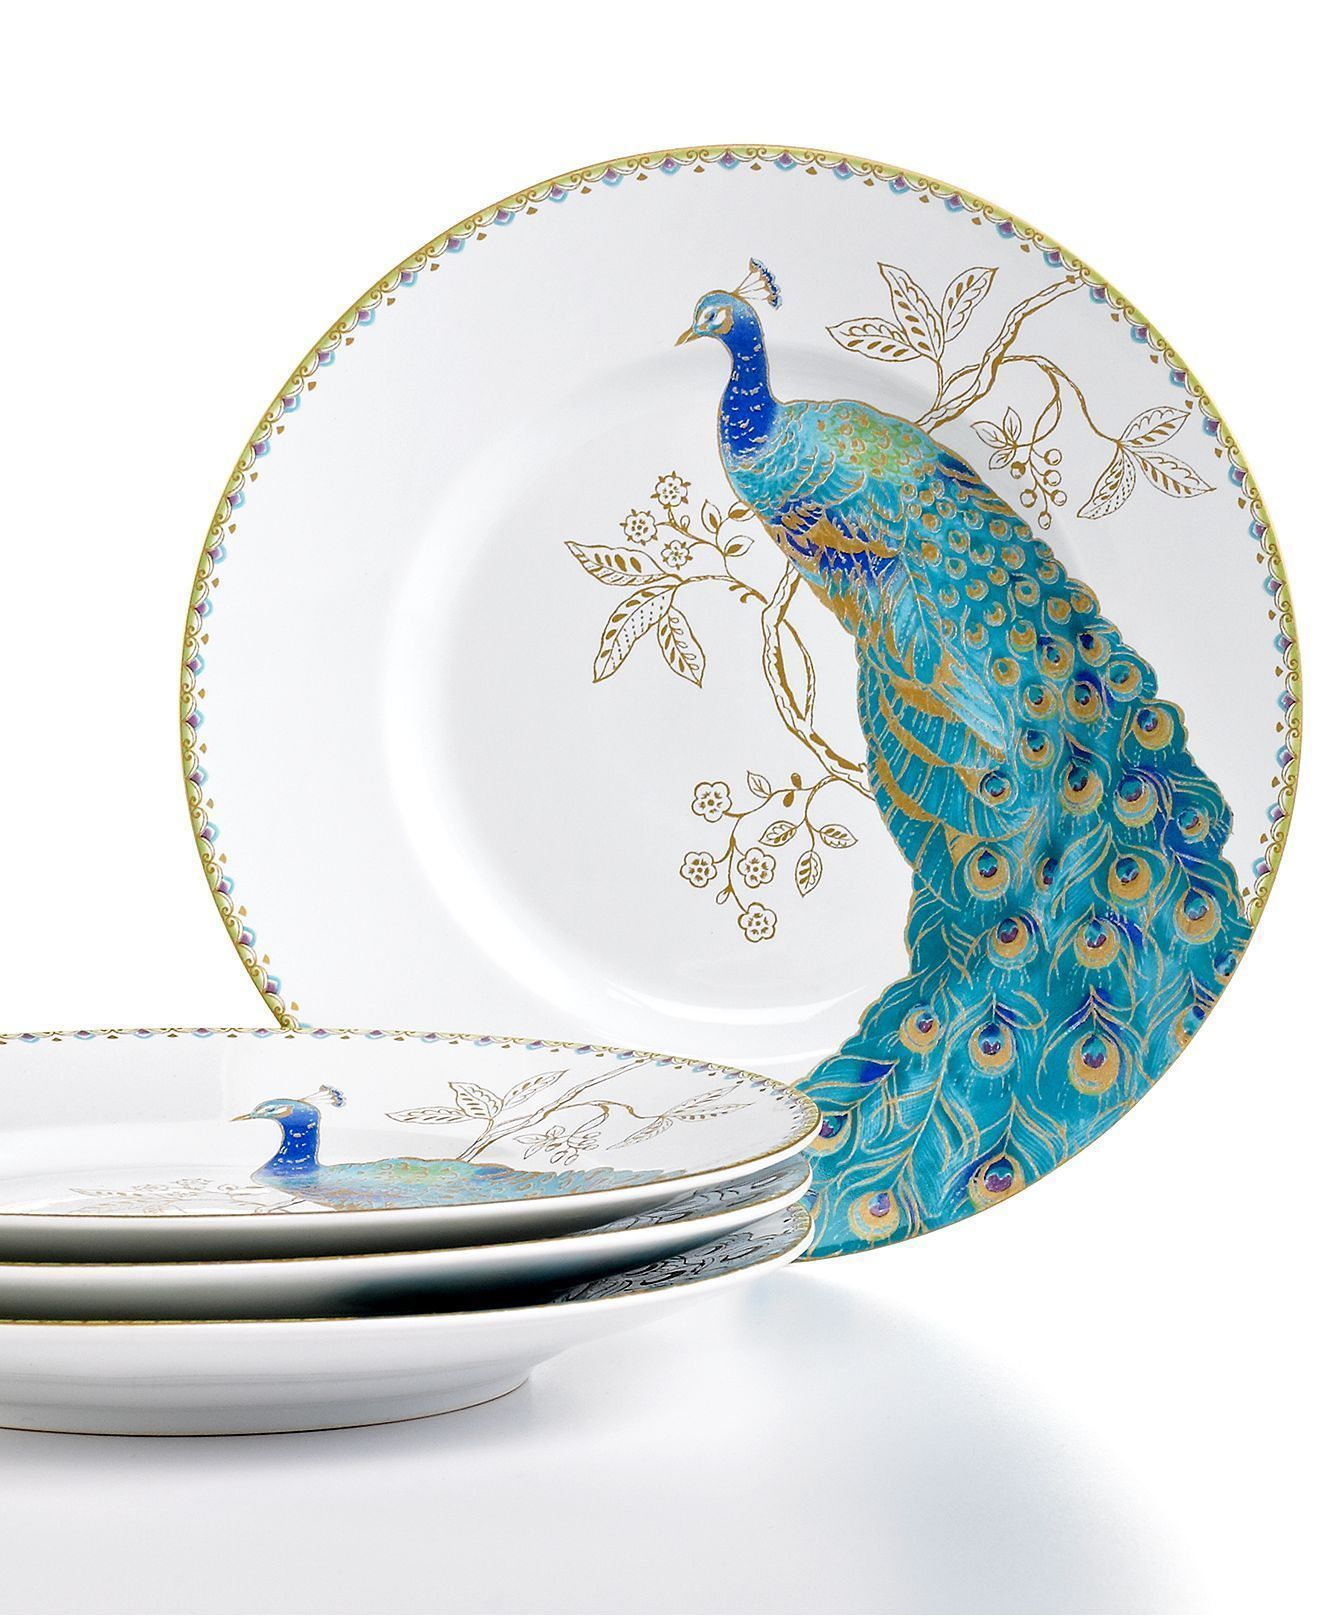 222 Fifth Dinnerware, Set of 4 Peacock Garden Salad Plates - Casual Dinnerware - Dining  Entertaining - Macy's #casualdinnerware 222 Fifth Dinnerware, Set of 4 Peacock Garden Salad Plates - Casual Dinnerware - Dining  Entertaining - Macy's #casualdinnerware 222 Fifth Dinnerware, Set of 4 Peacock Garden Salad Plates - Casual Dinnerware - Dining  Entertaining - Macy's #casualdinnerware 222 Fifth Dinnerware, Set of 4 Peacock Garden Salad Plates - Casual Dinnerware - Dining  Entertaining - Macy's #c #casualdinnerware